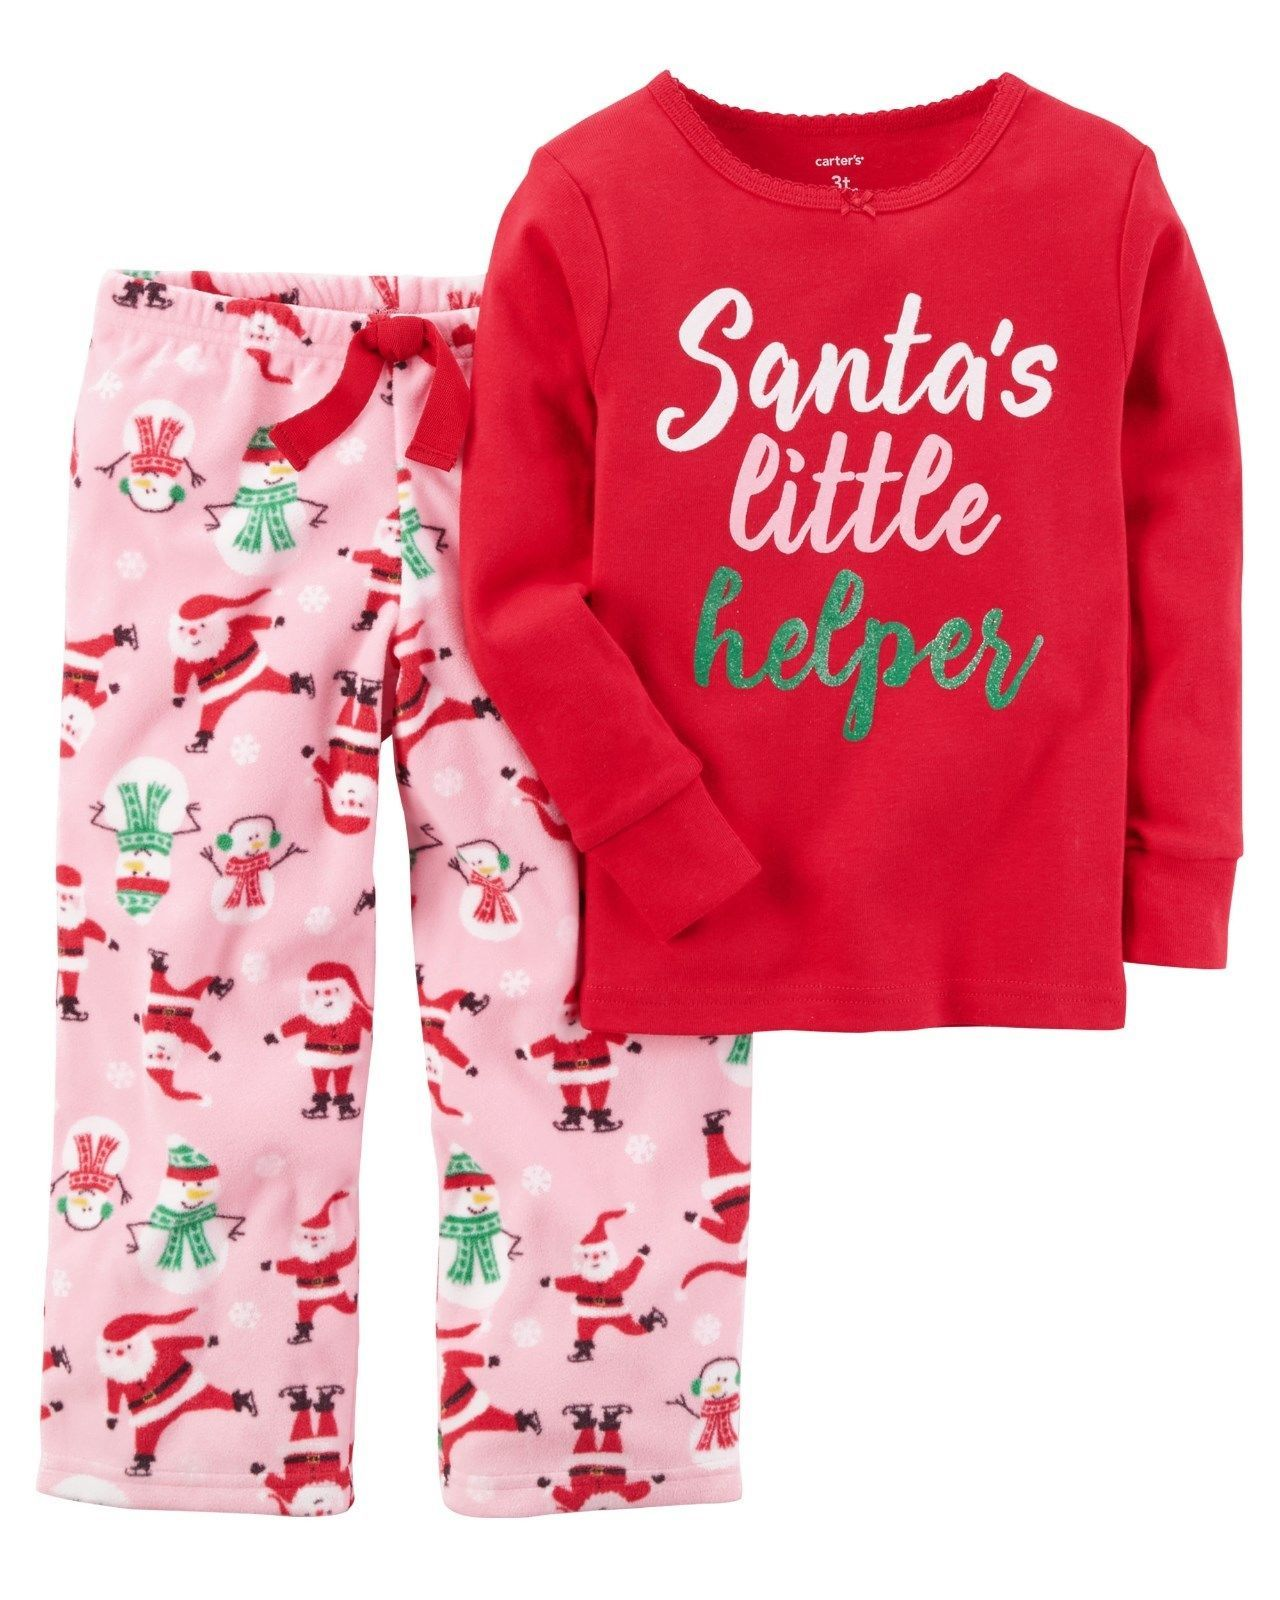 314b6f4745d8  12 - Carter s 2 Piece Santa s Helper Girls Holiday Pajamas Nwt 3T ...